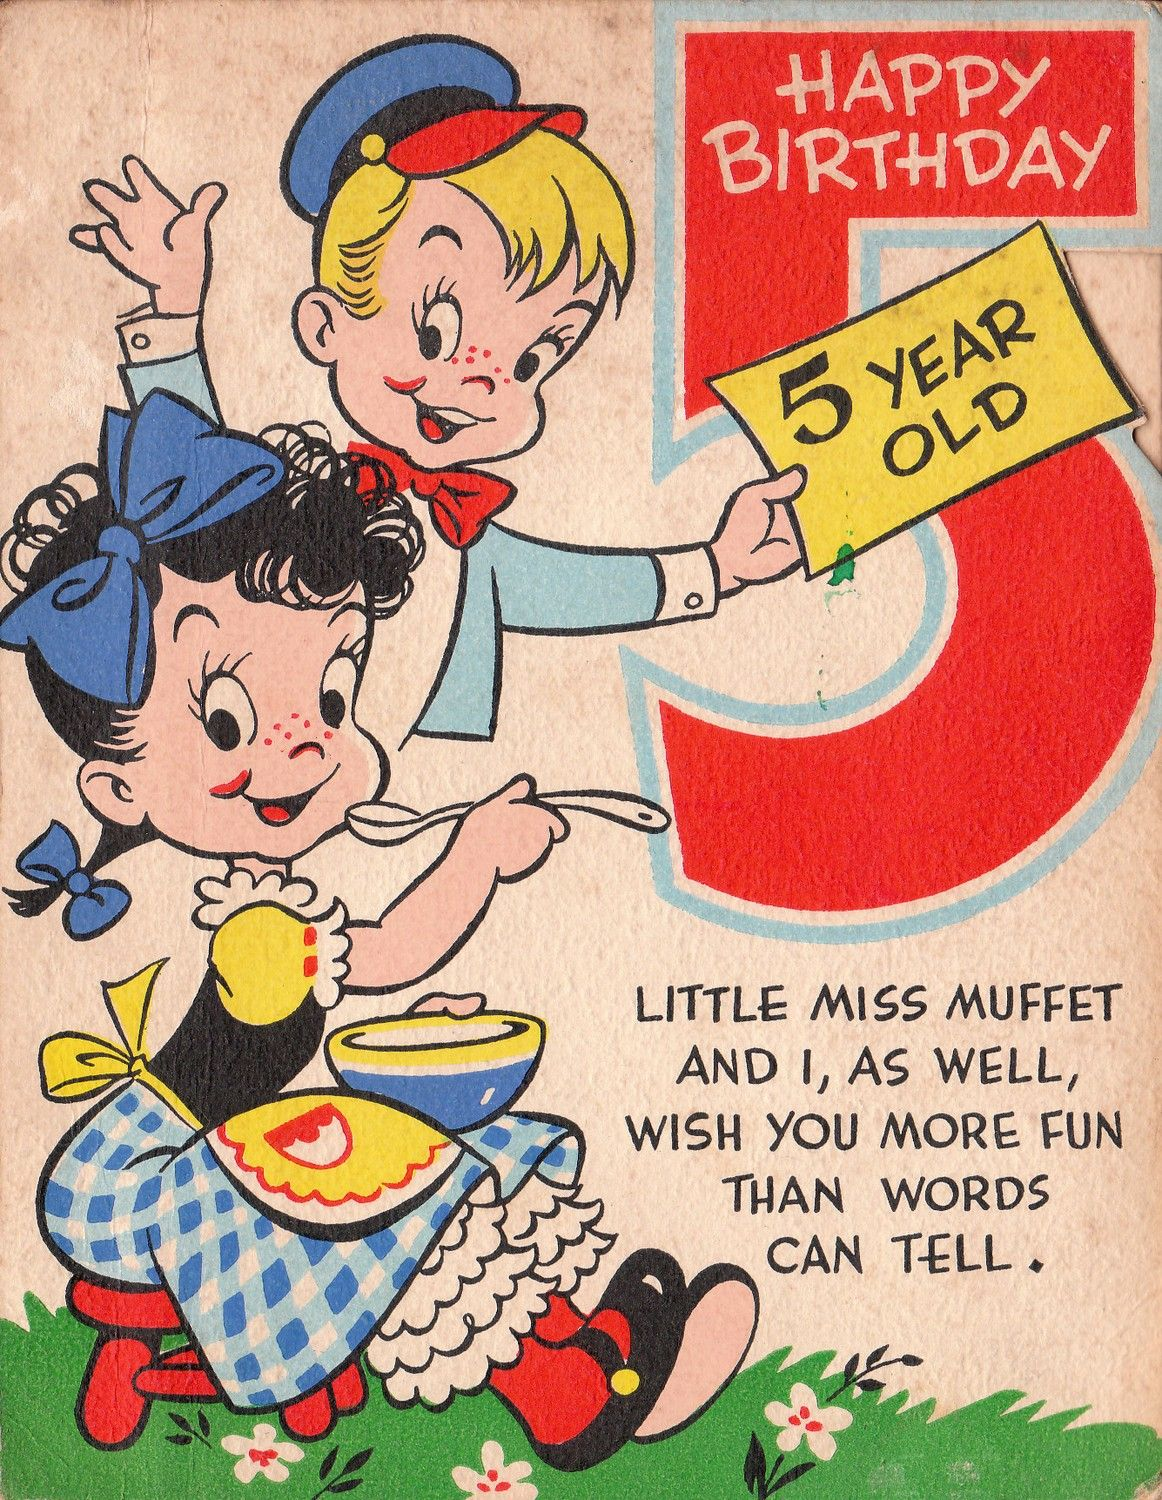 Happy birthday wishes from Little Miss Muffet vintage birthday